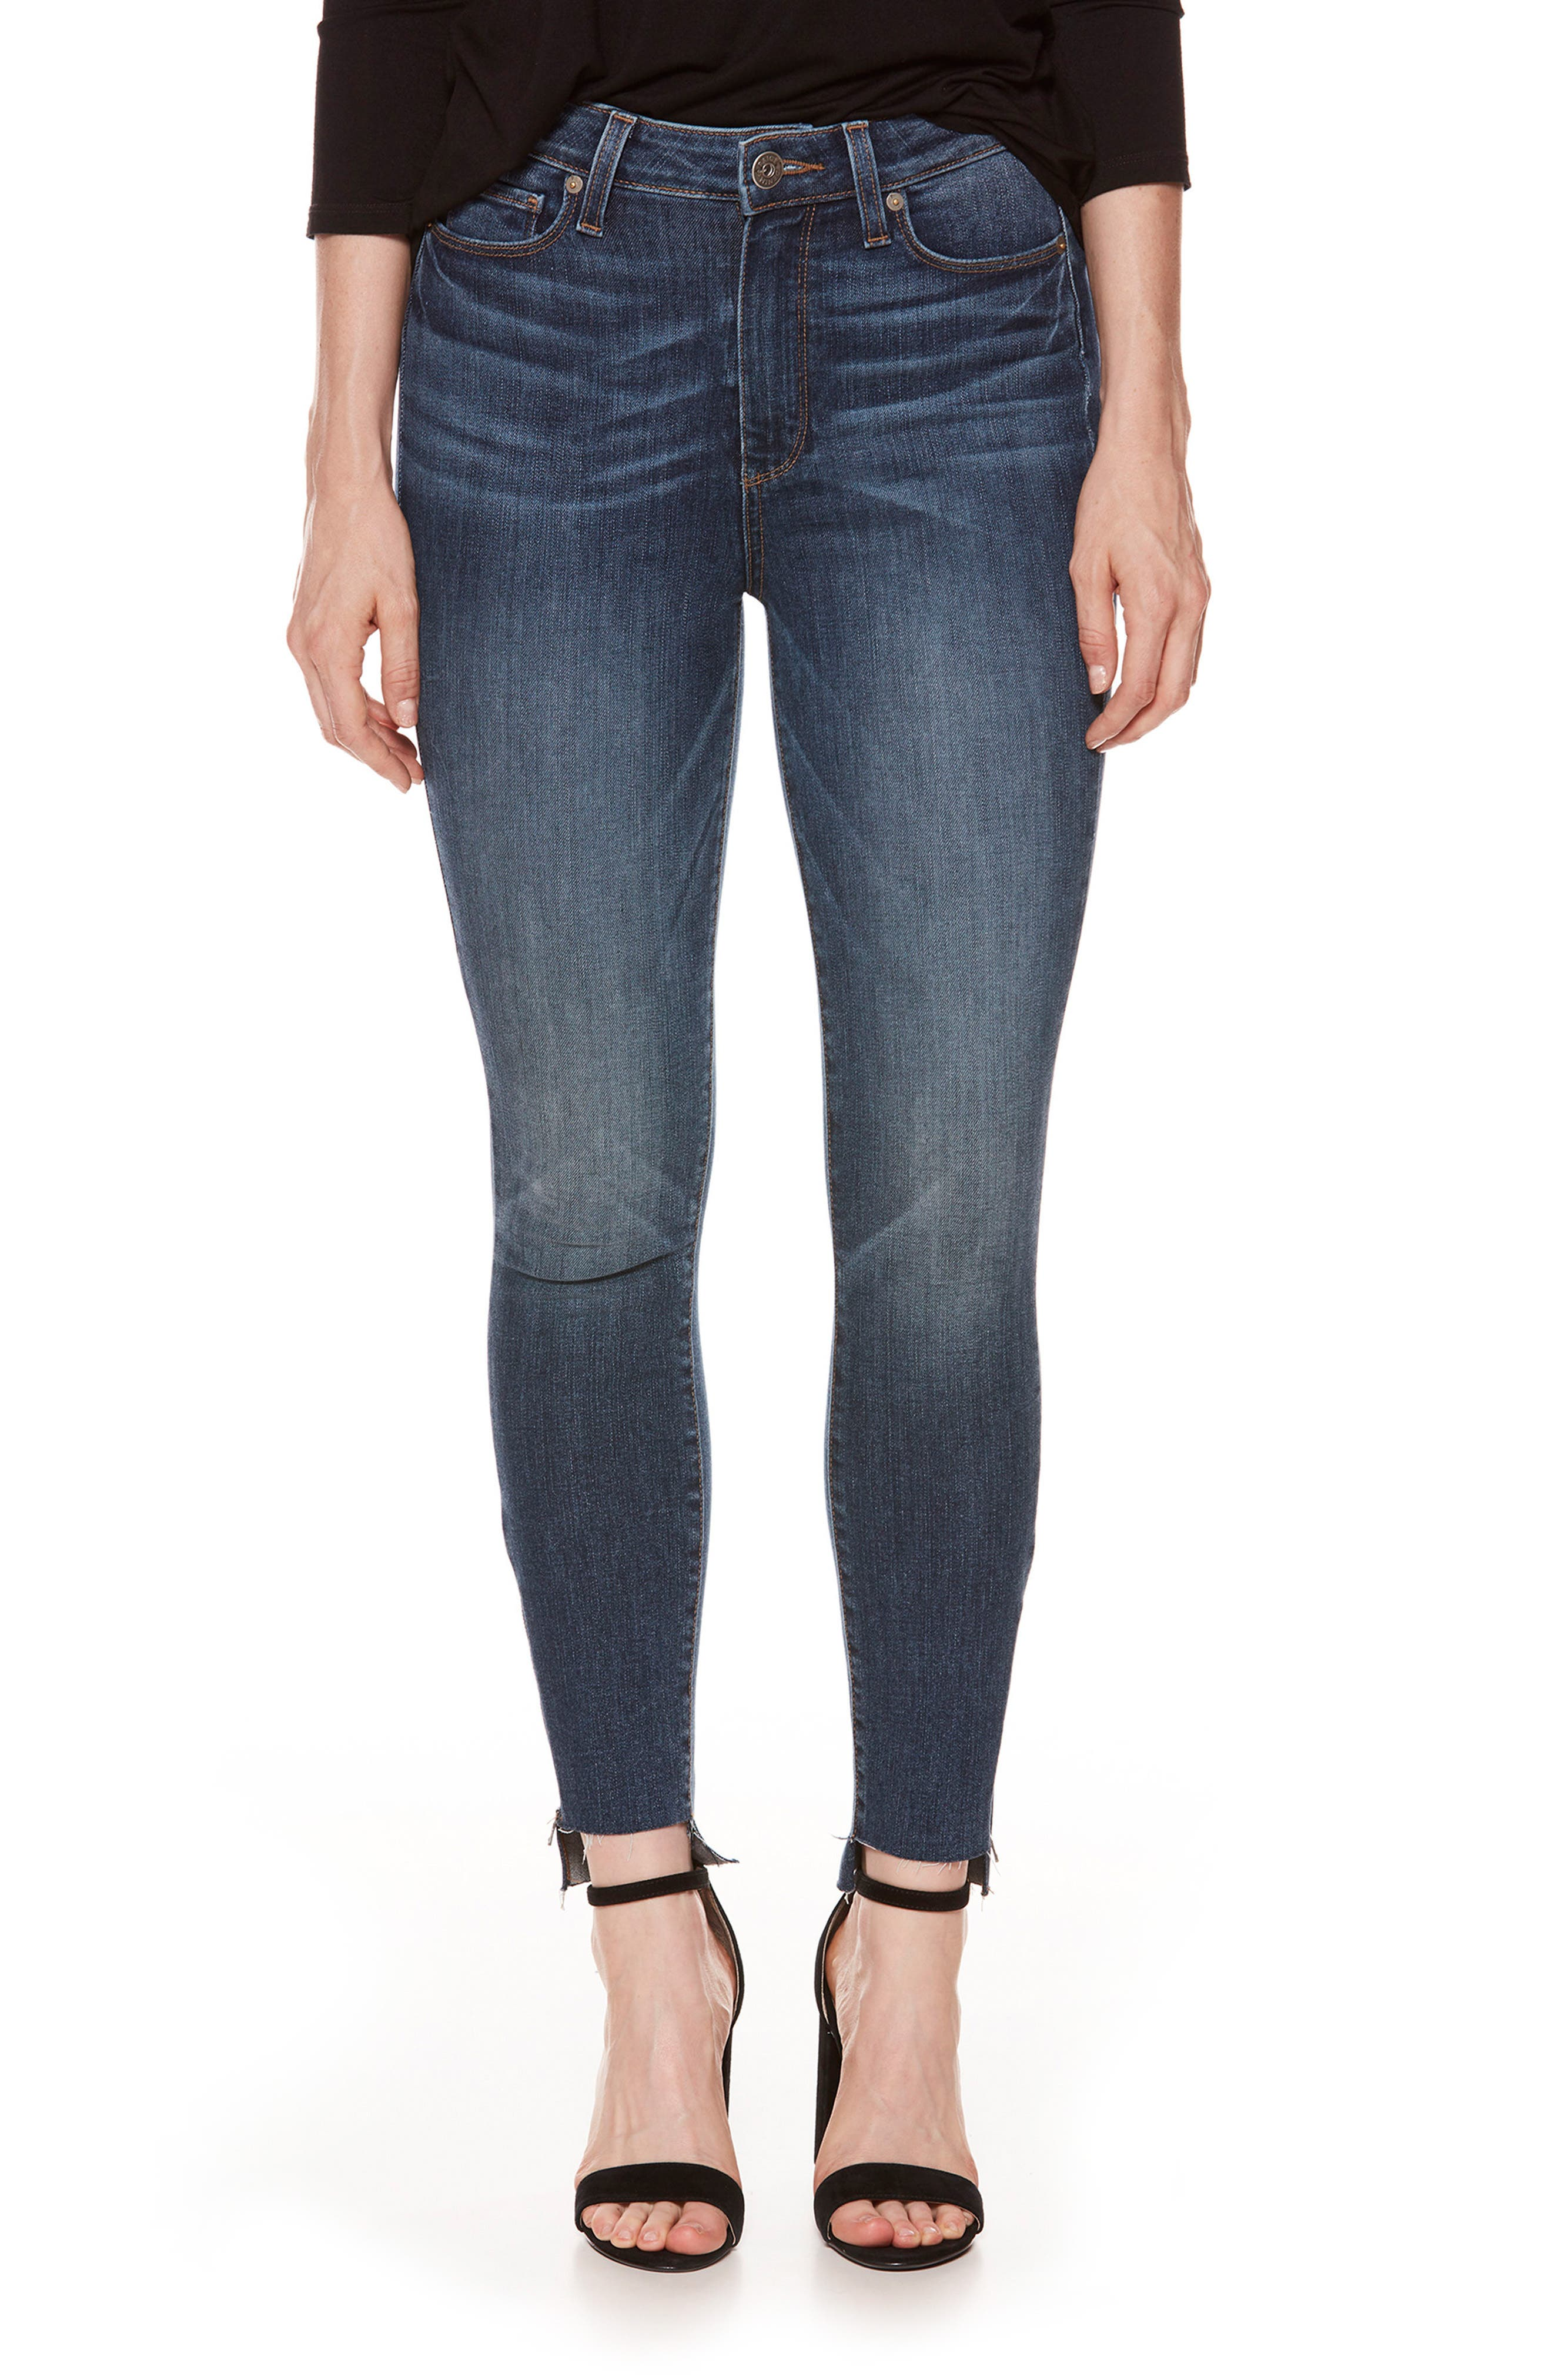 Margot High Waist Zip Skinny Jeans,                         Main,                         color, Westminster